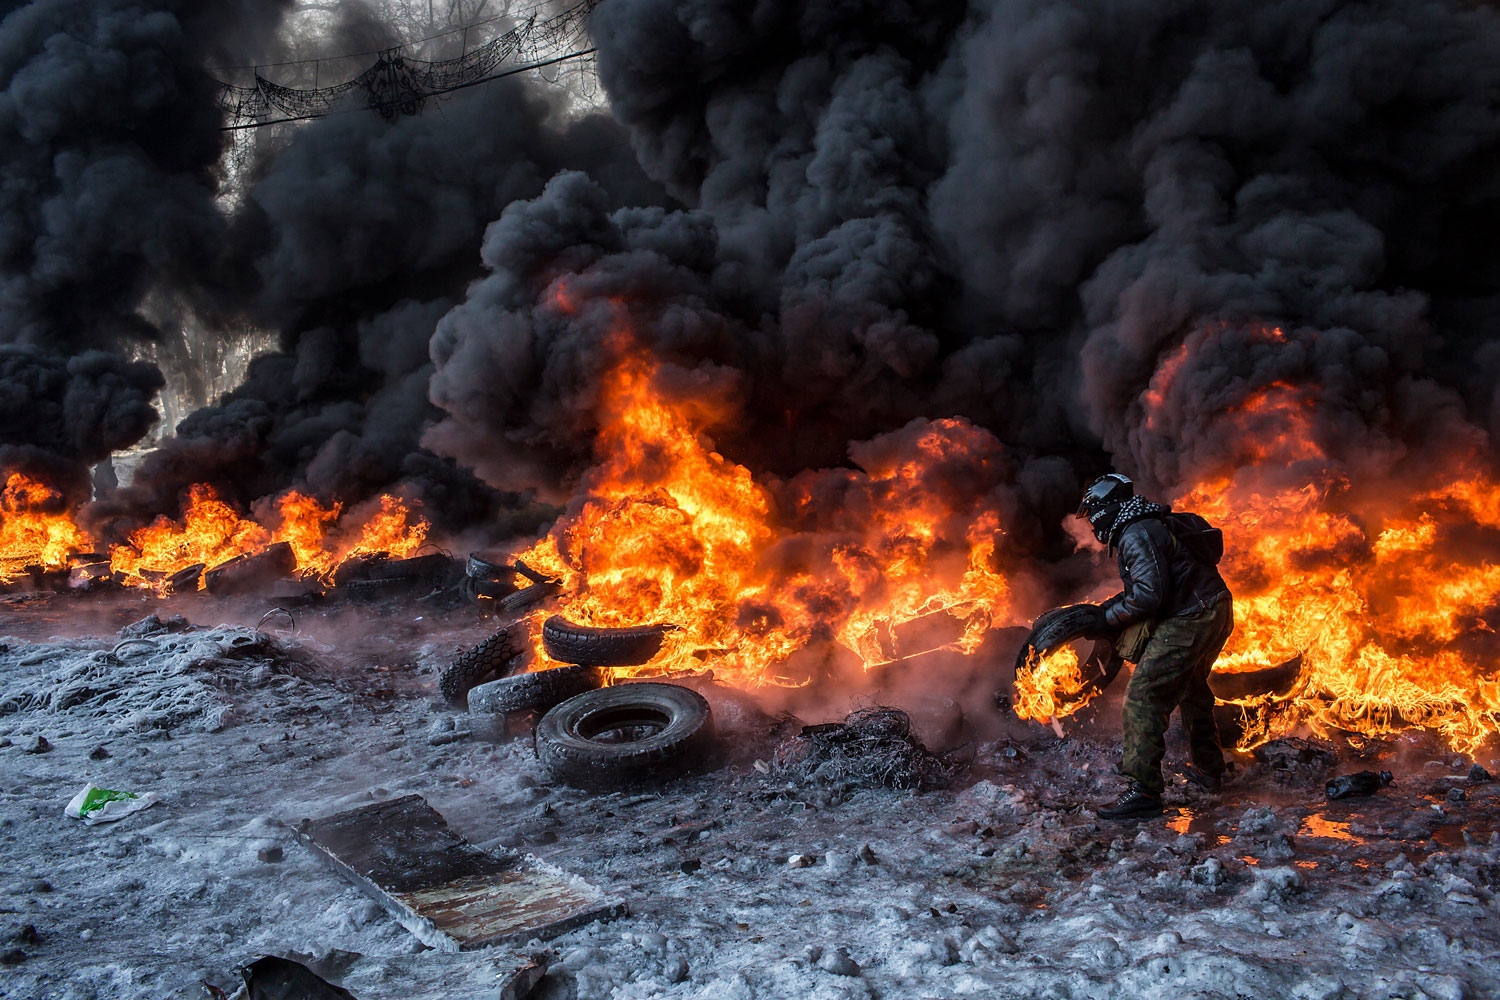 A Ukrainian protester burns tires during clashes with police in Kiev on Jan. 25, 2014